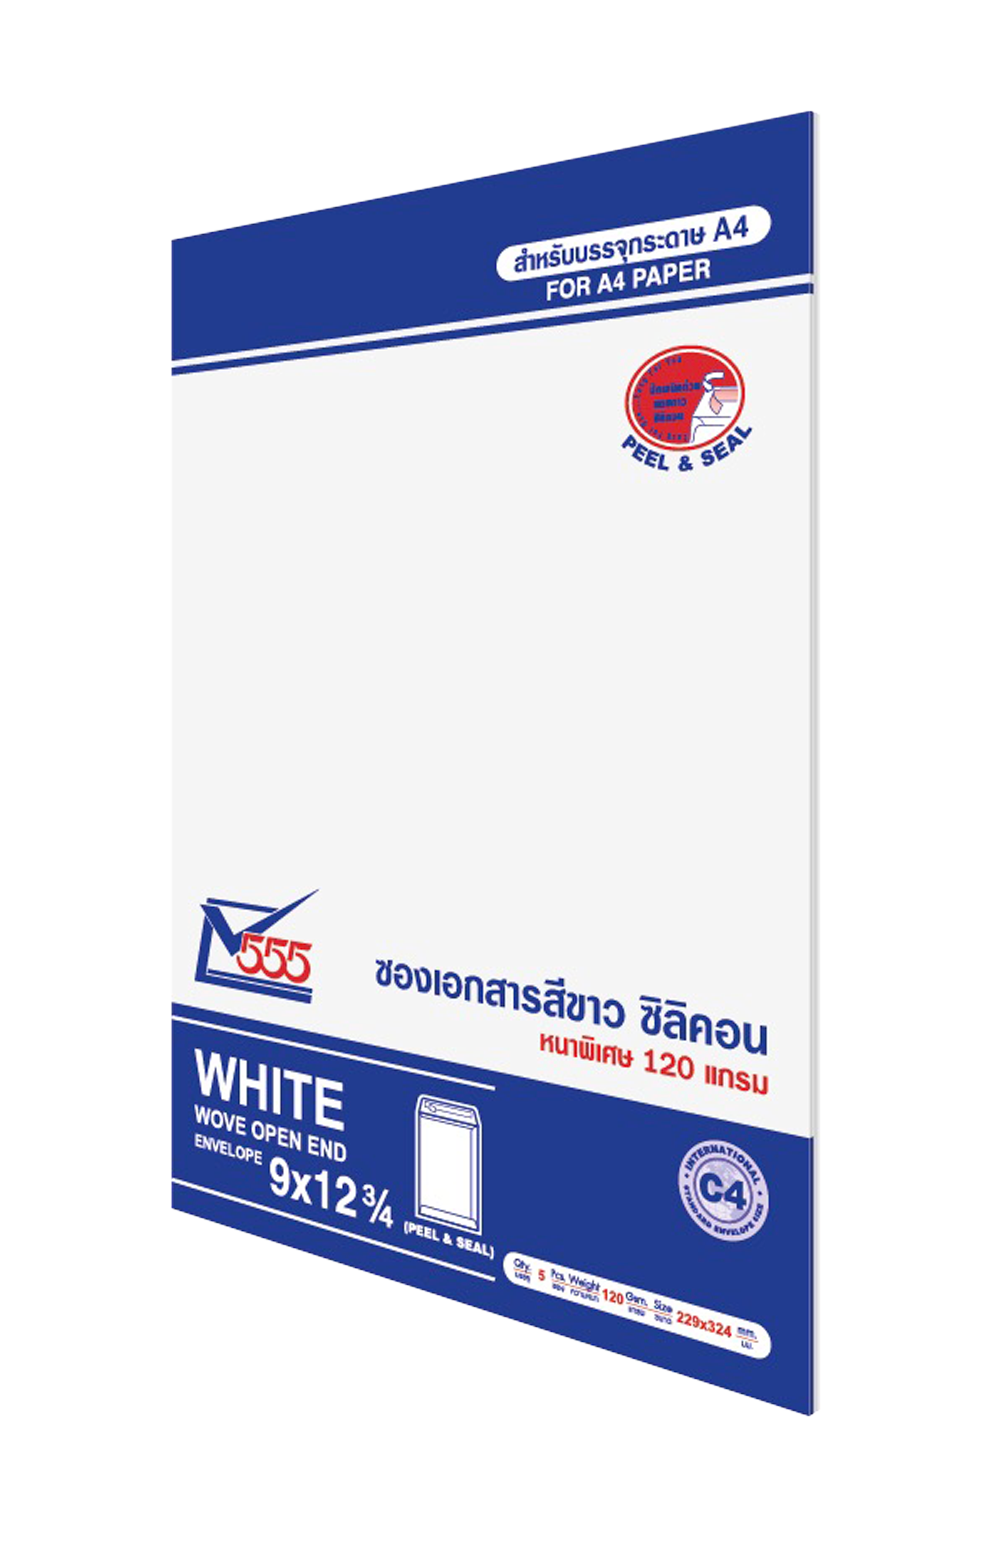 White Open End No. 9 x 12 3/4 Peel & Seal (Pack 5)